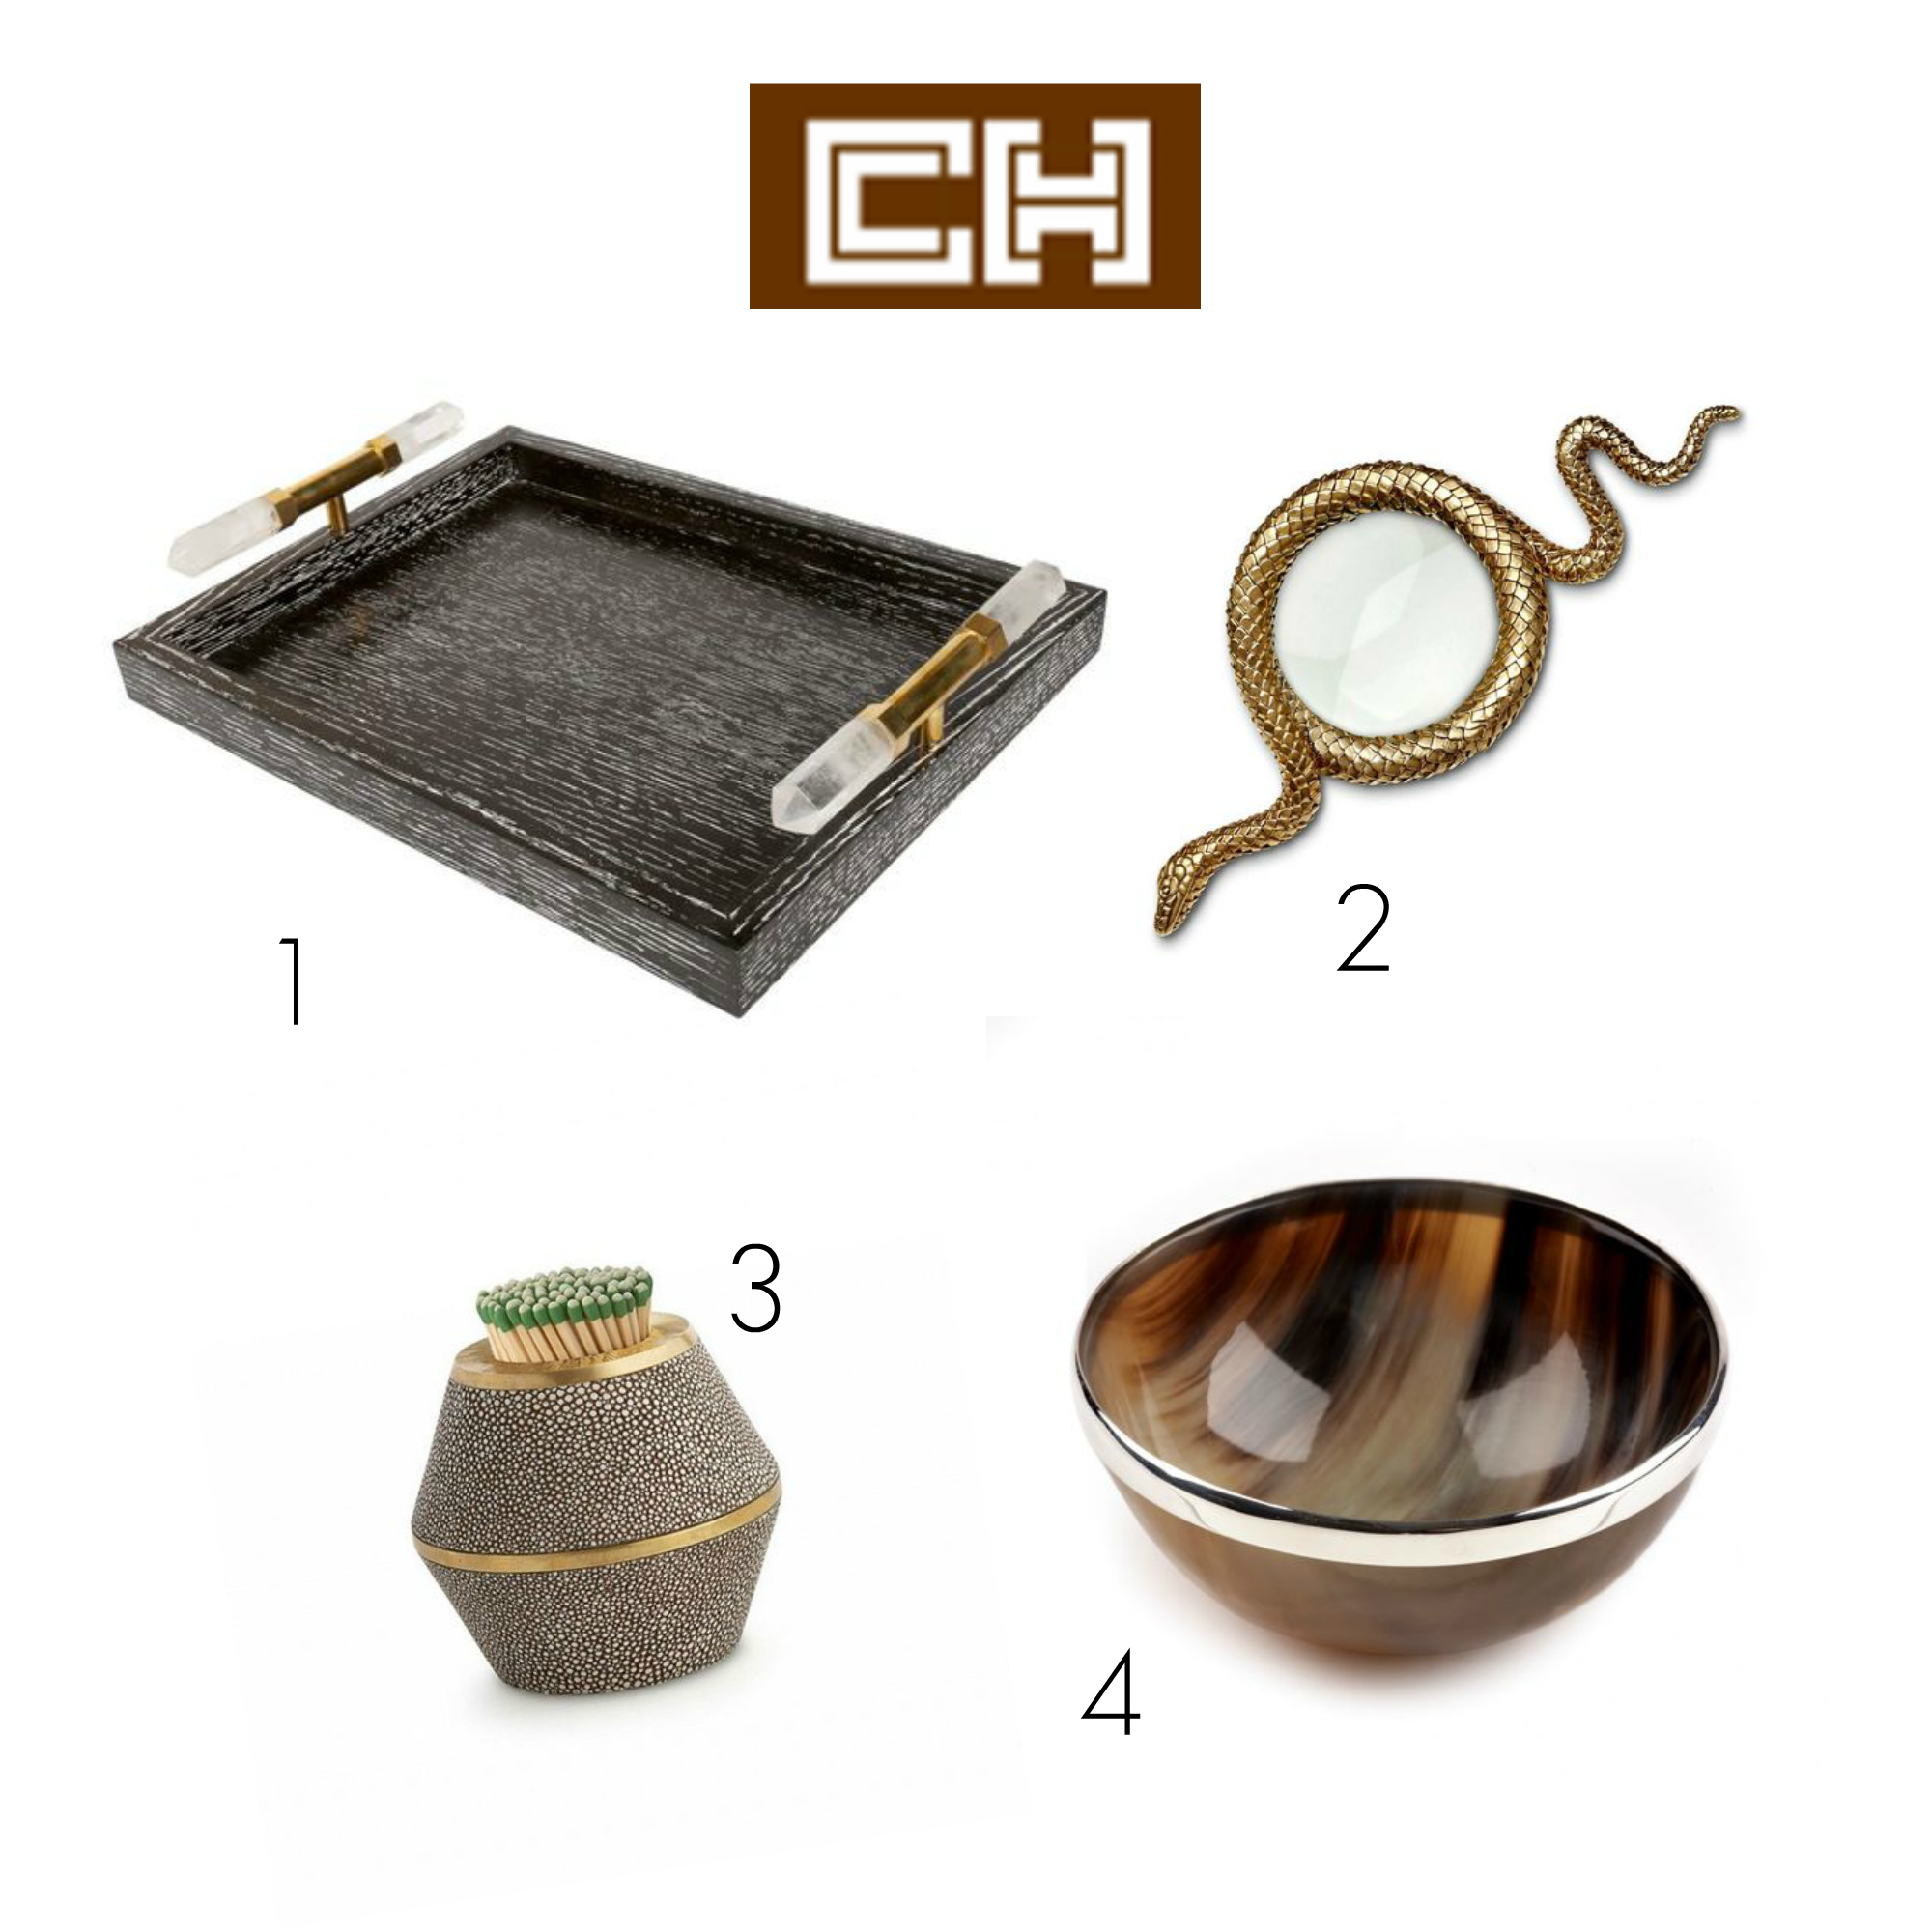 1.  Kelly Wearstler Tray  (quite the splurge, I'll admit) 2.  Serpent Magnifying Glass  3.  Shagreen Match Holder  4.  Silver-Rimmed Horn Bowl